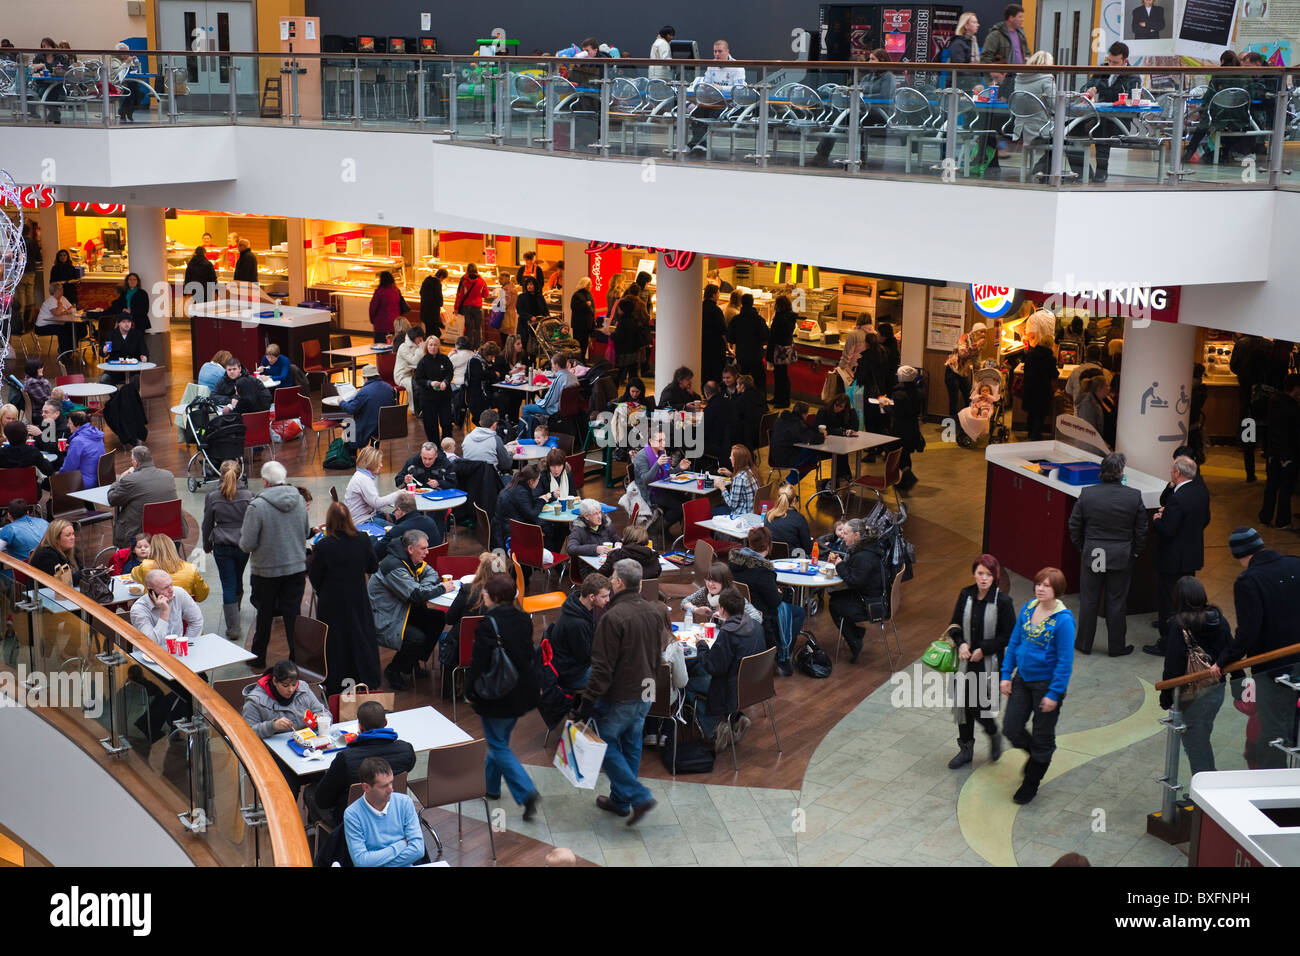 Fast food restaurants and seating area in a modern shopping mall Stock Photo